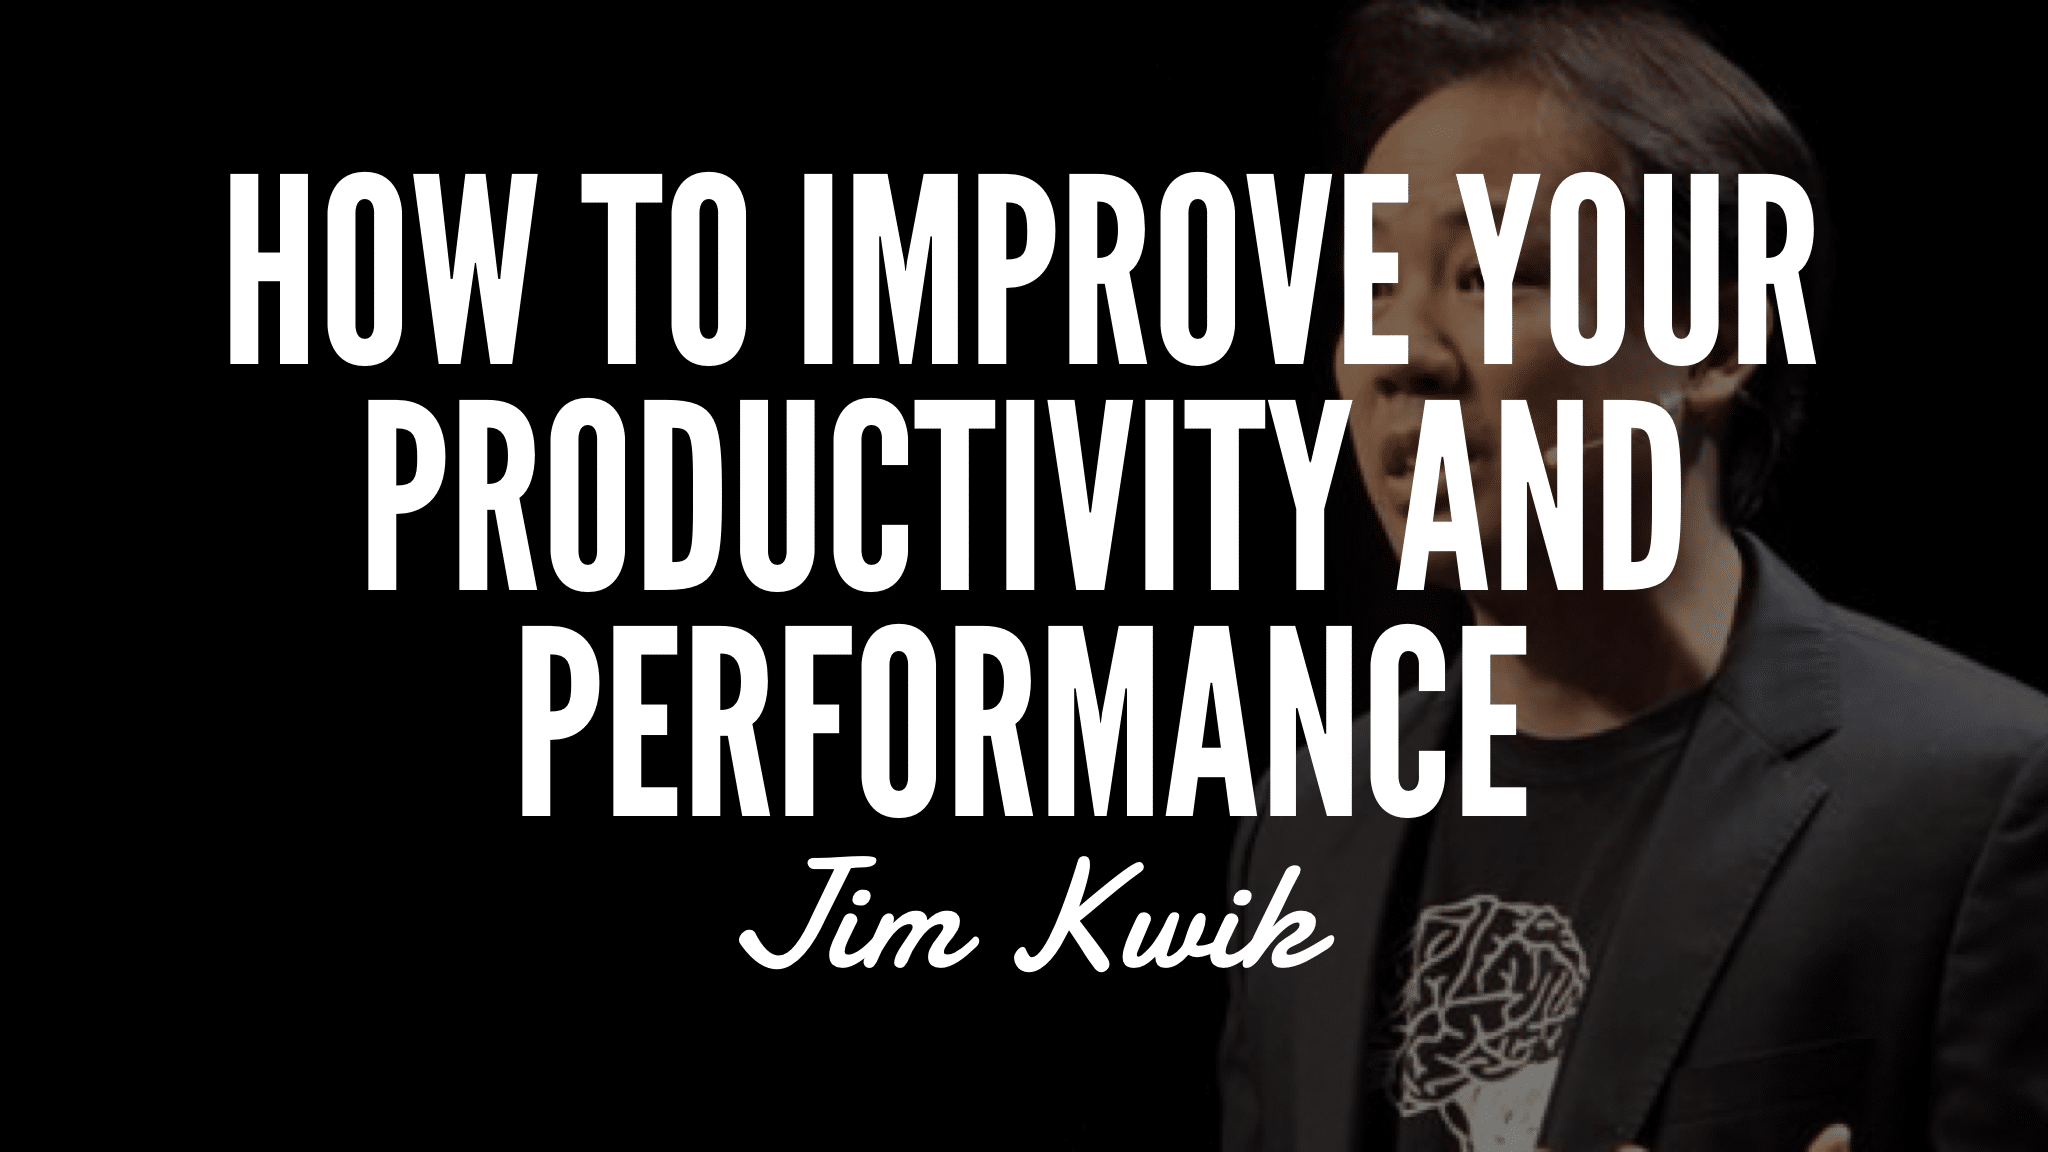 How To Improve Your Productivity And Performance